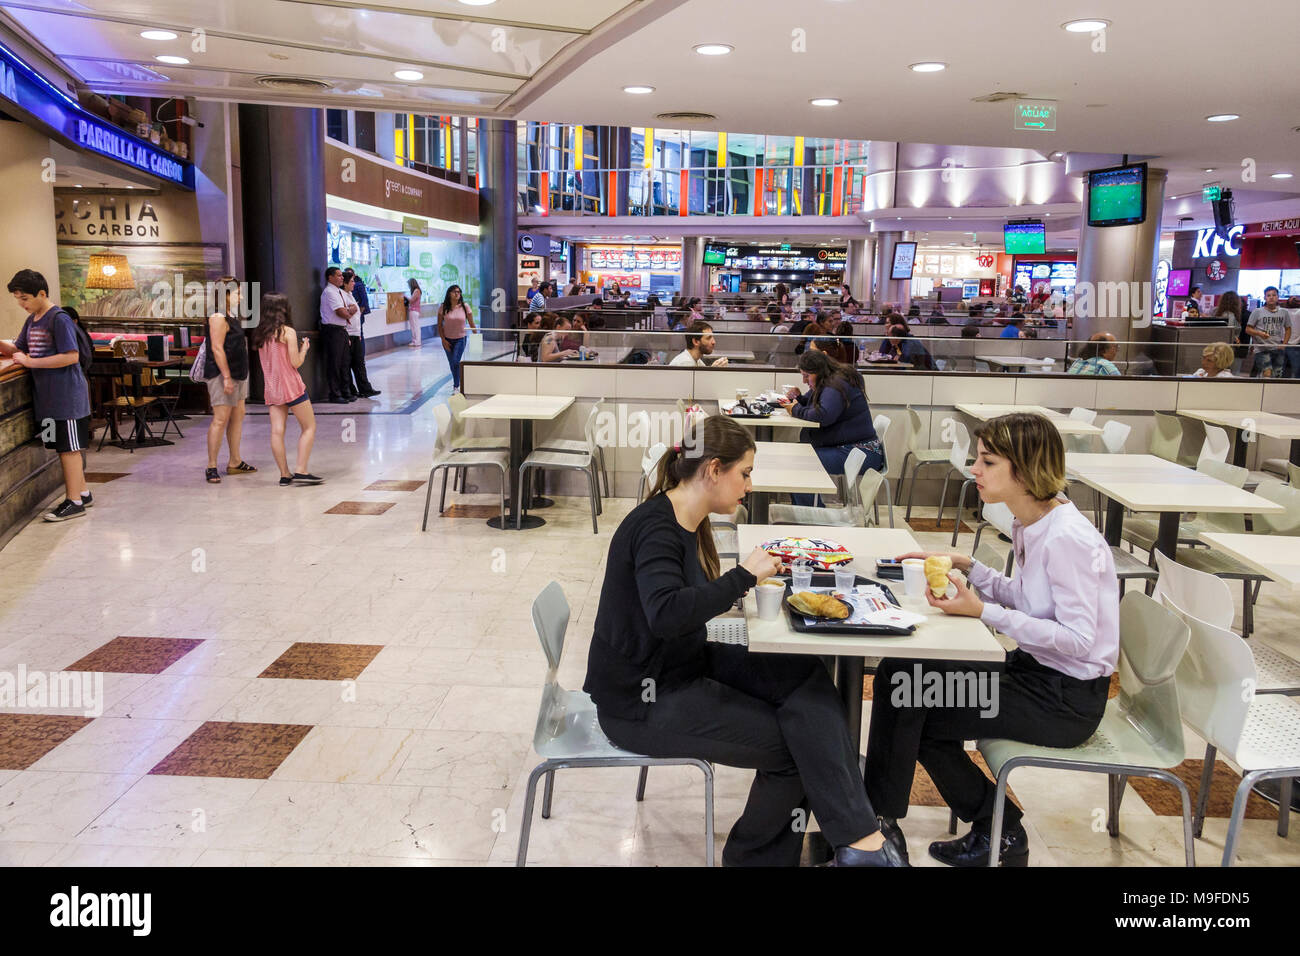 South Center Mall Food Court